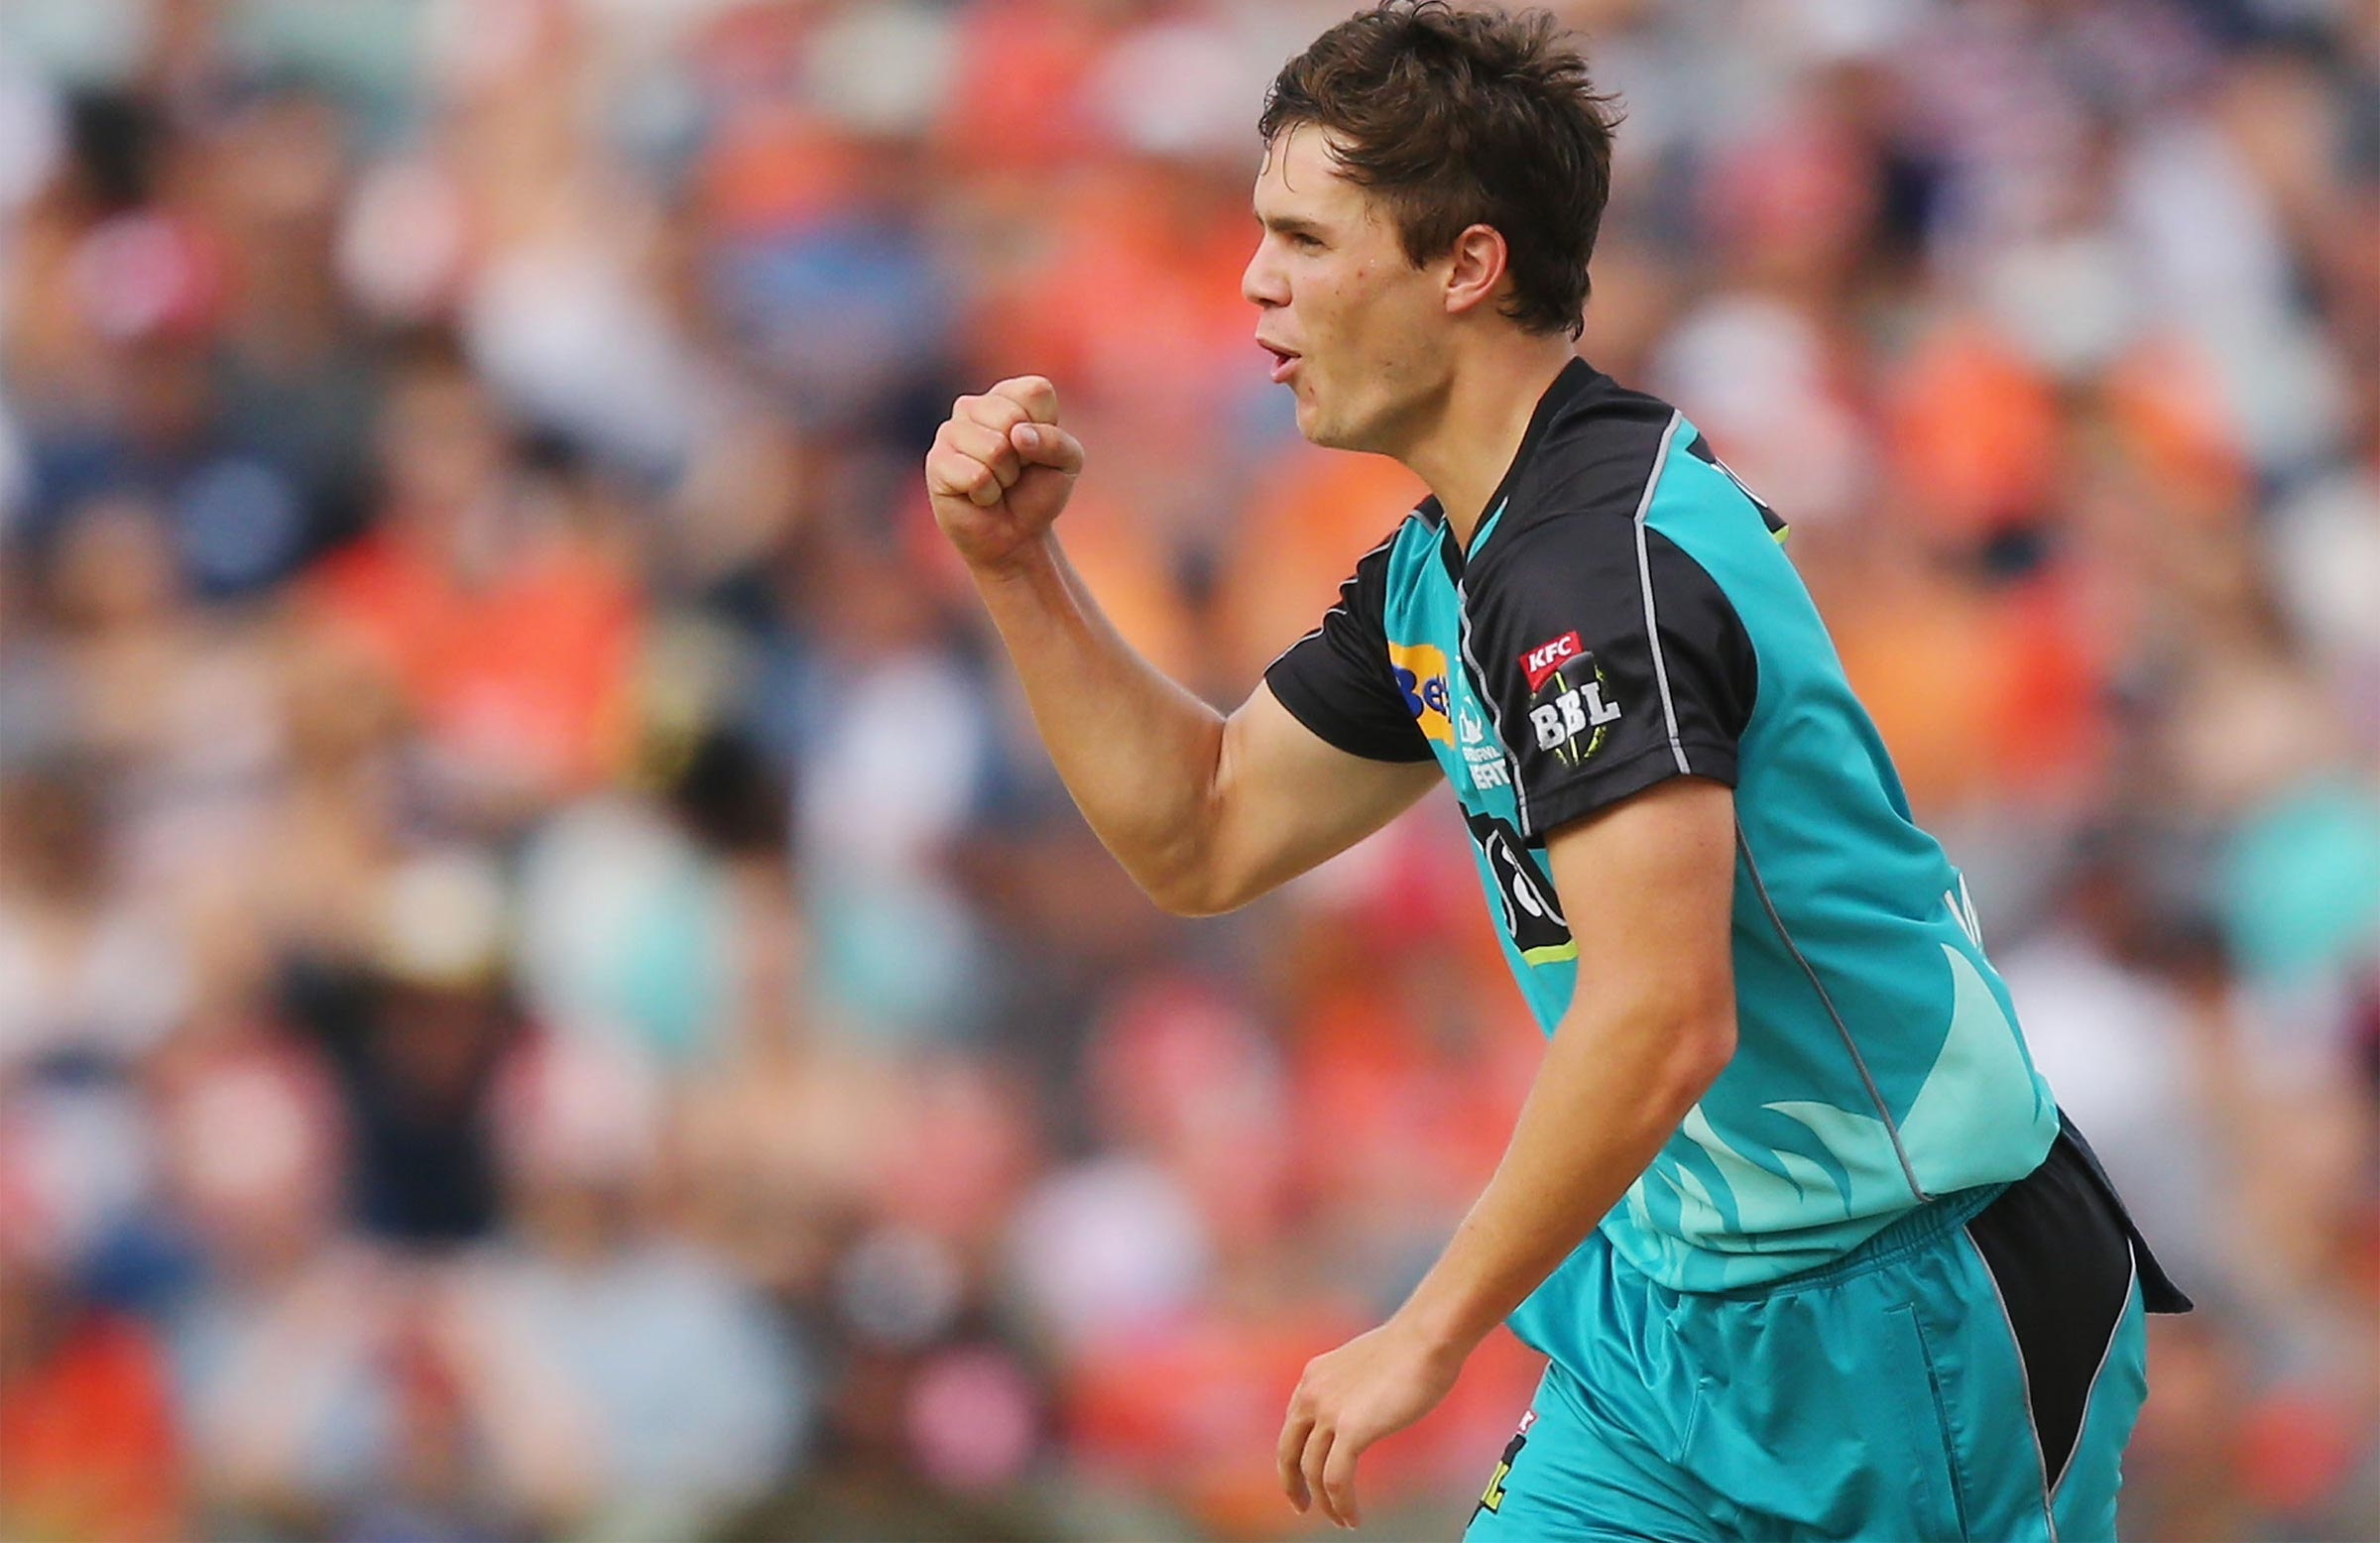 Swepson has enjoyed a rapid rise up the ranks // Getty